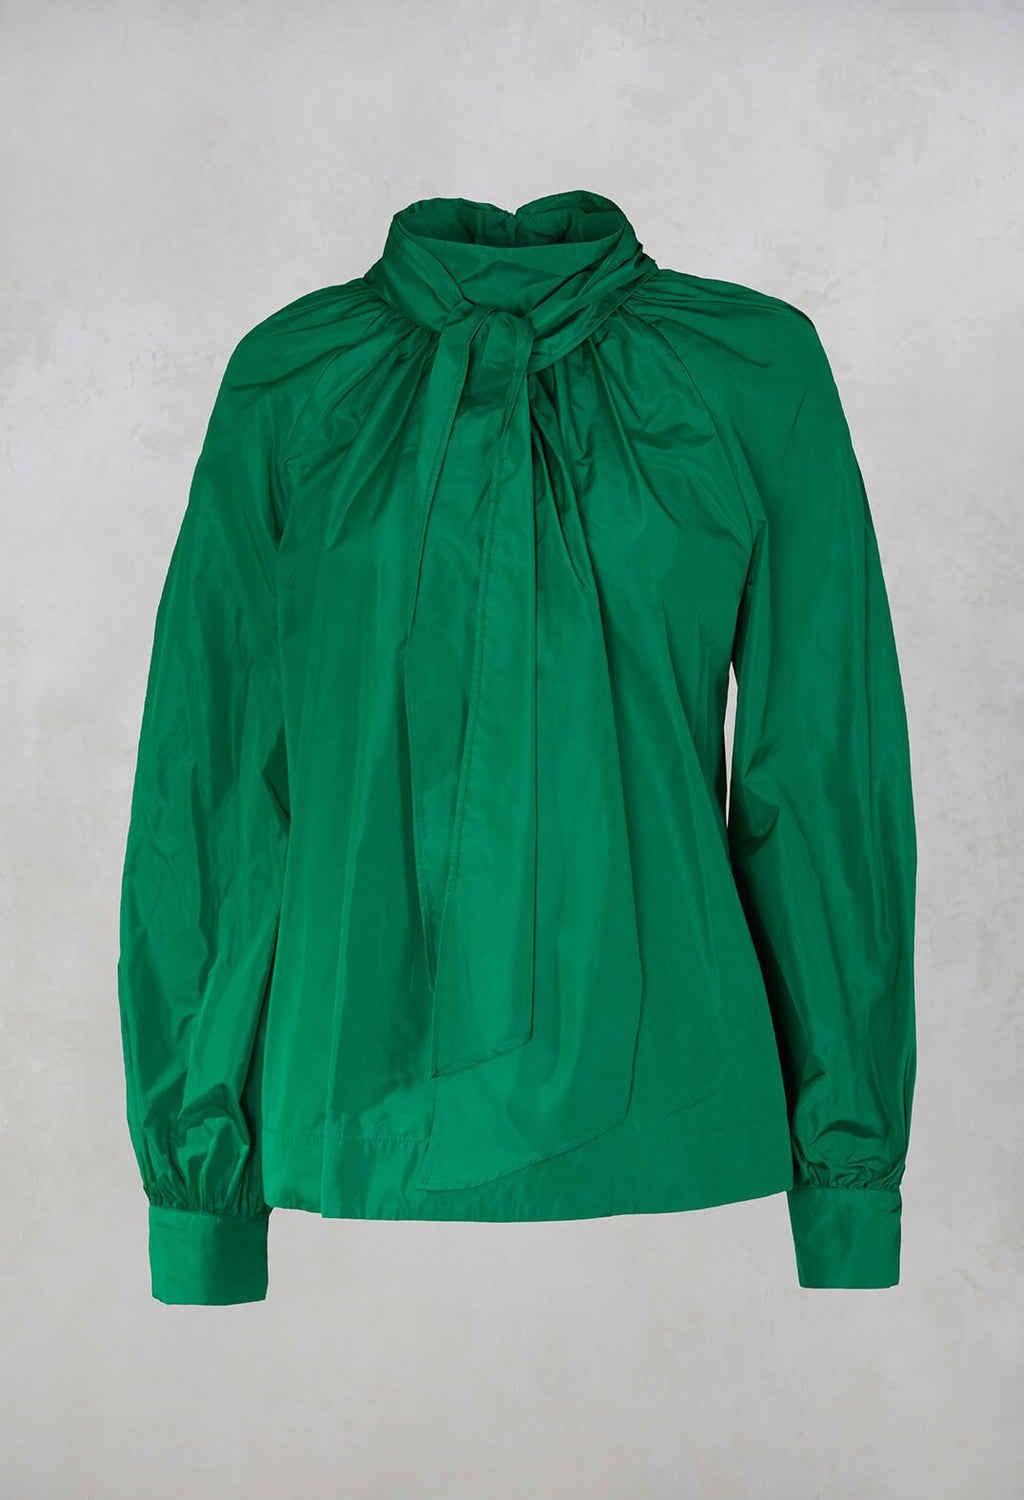 Blouse in Menta